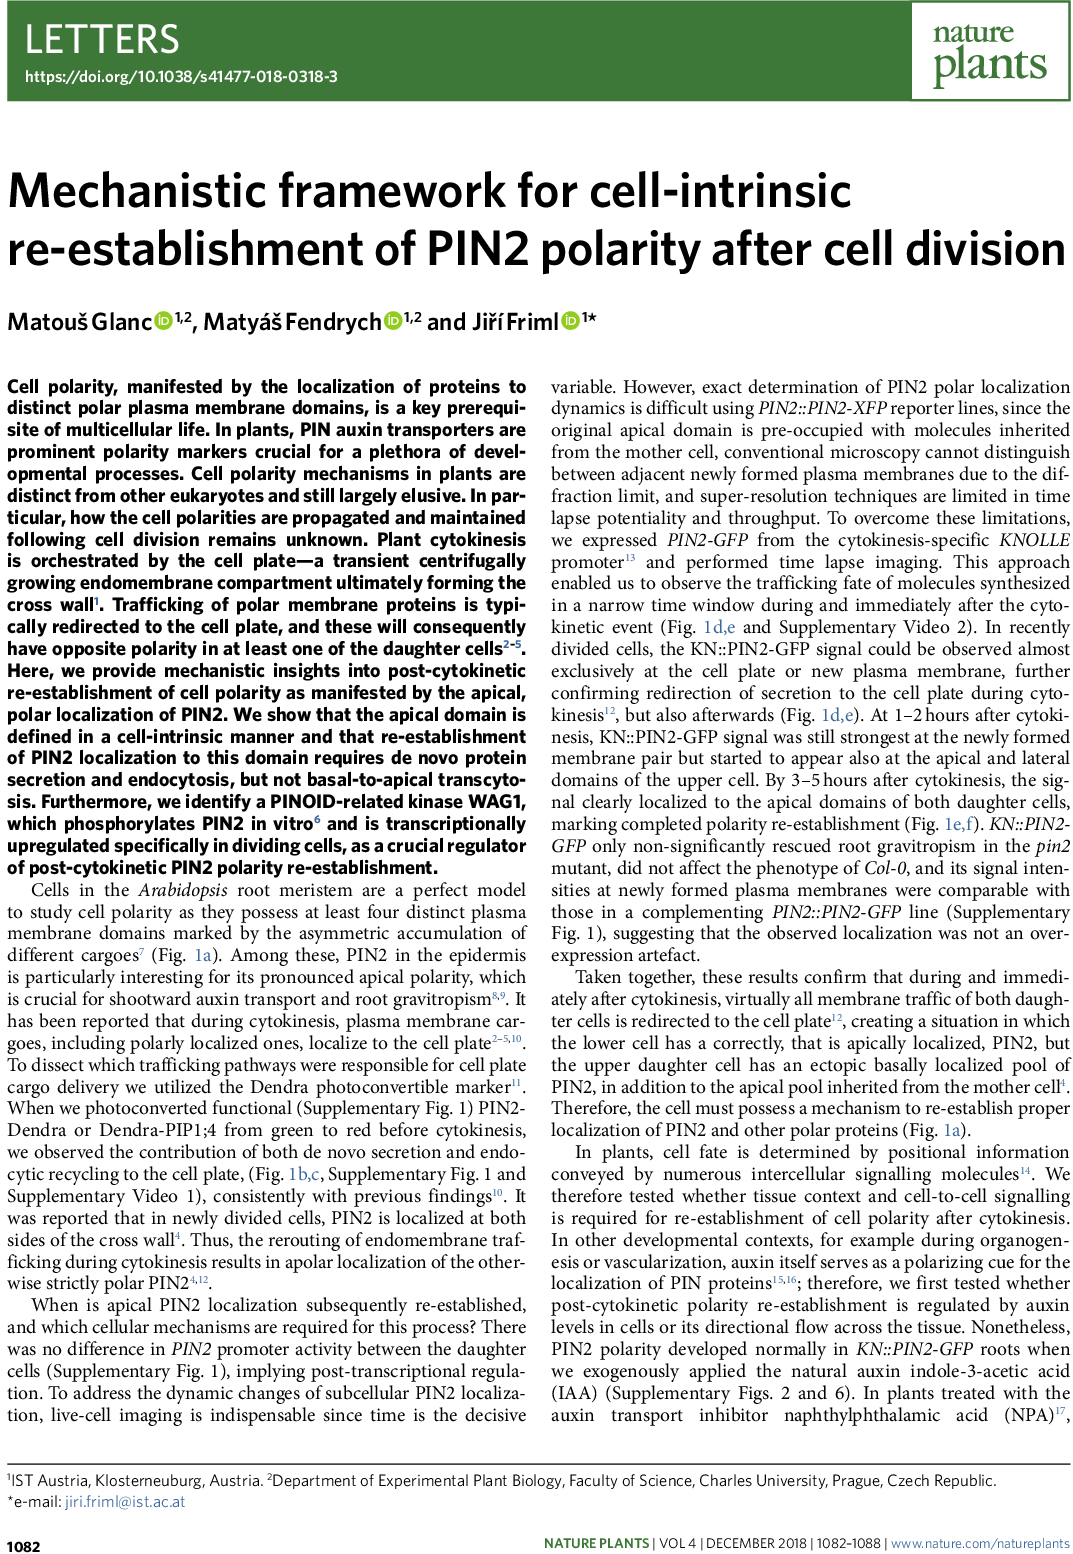 Mechanistic framework for cell-intrinsic re-establishment of PIN2 polarity after cell division